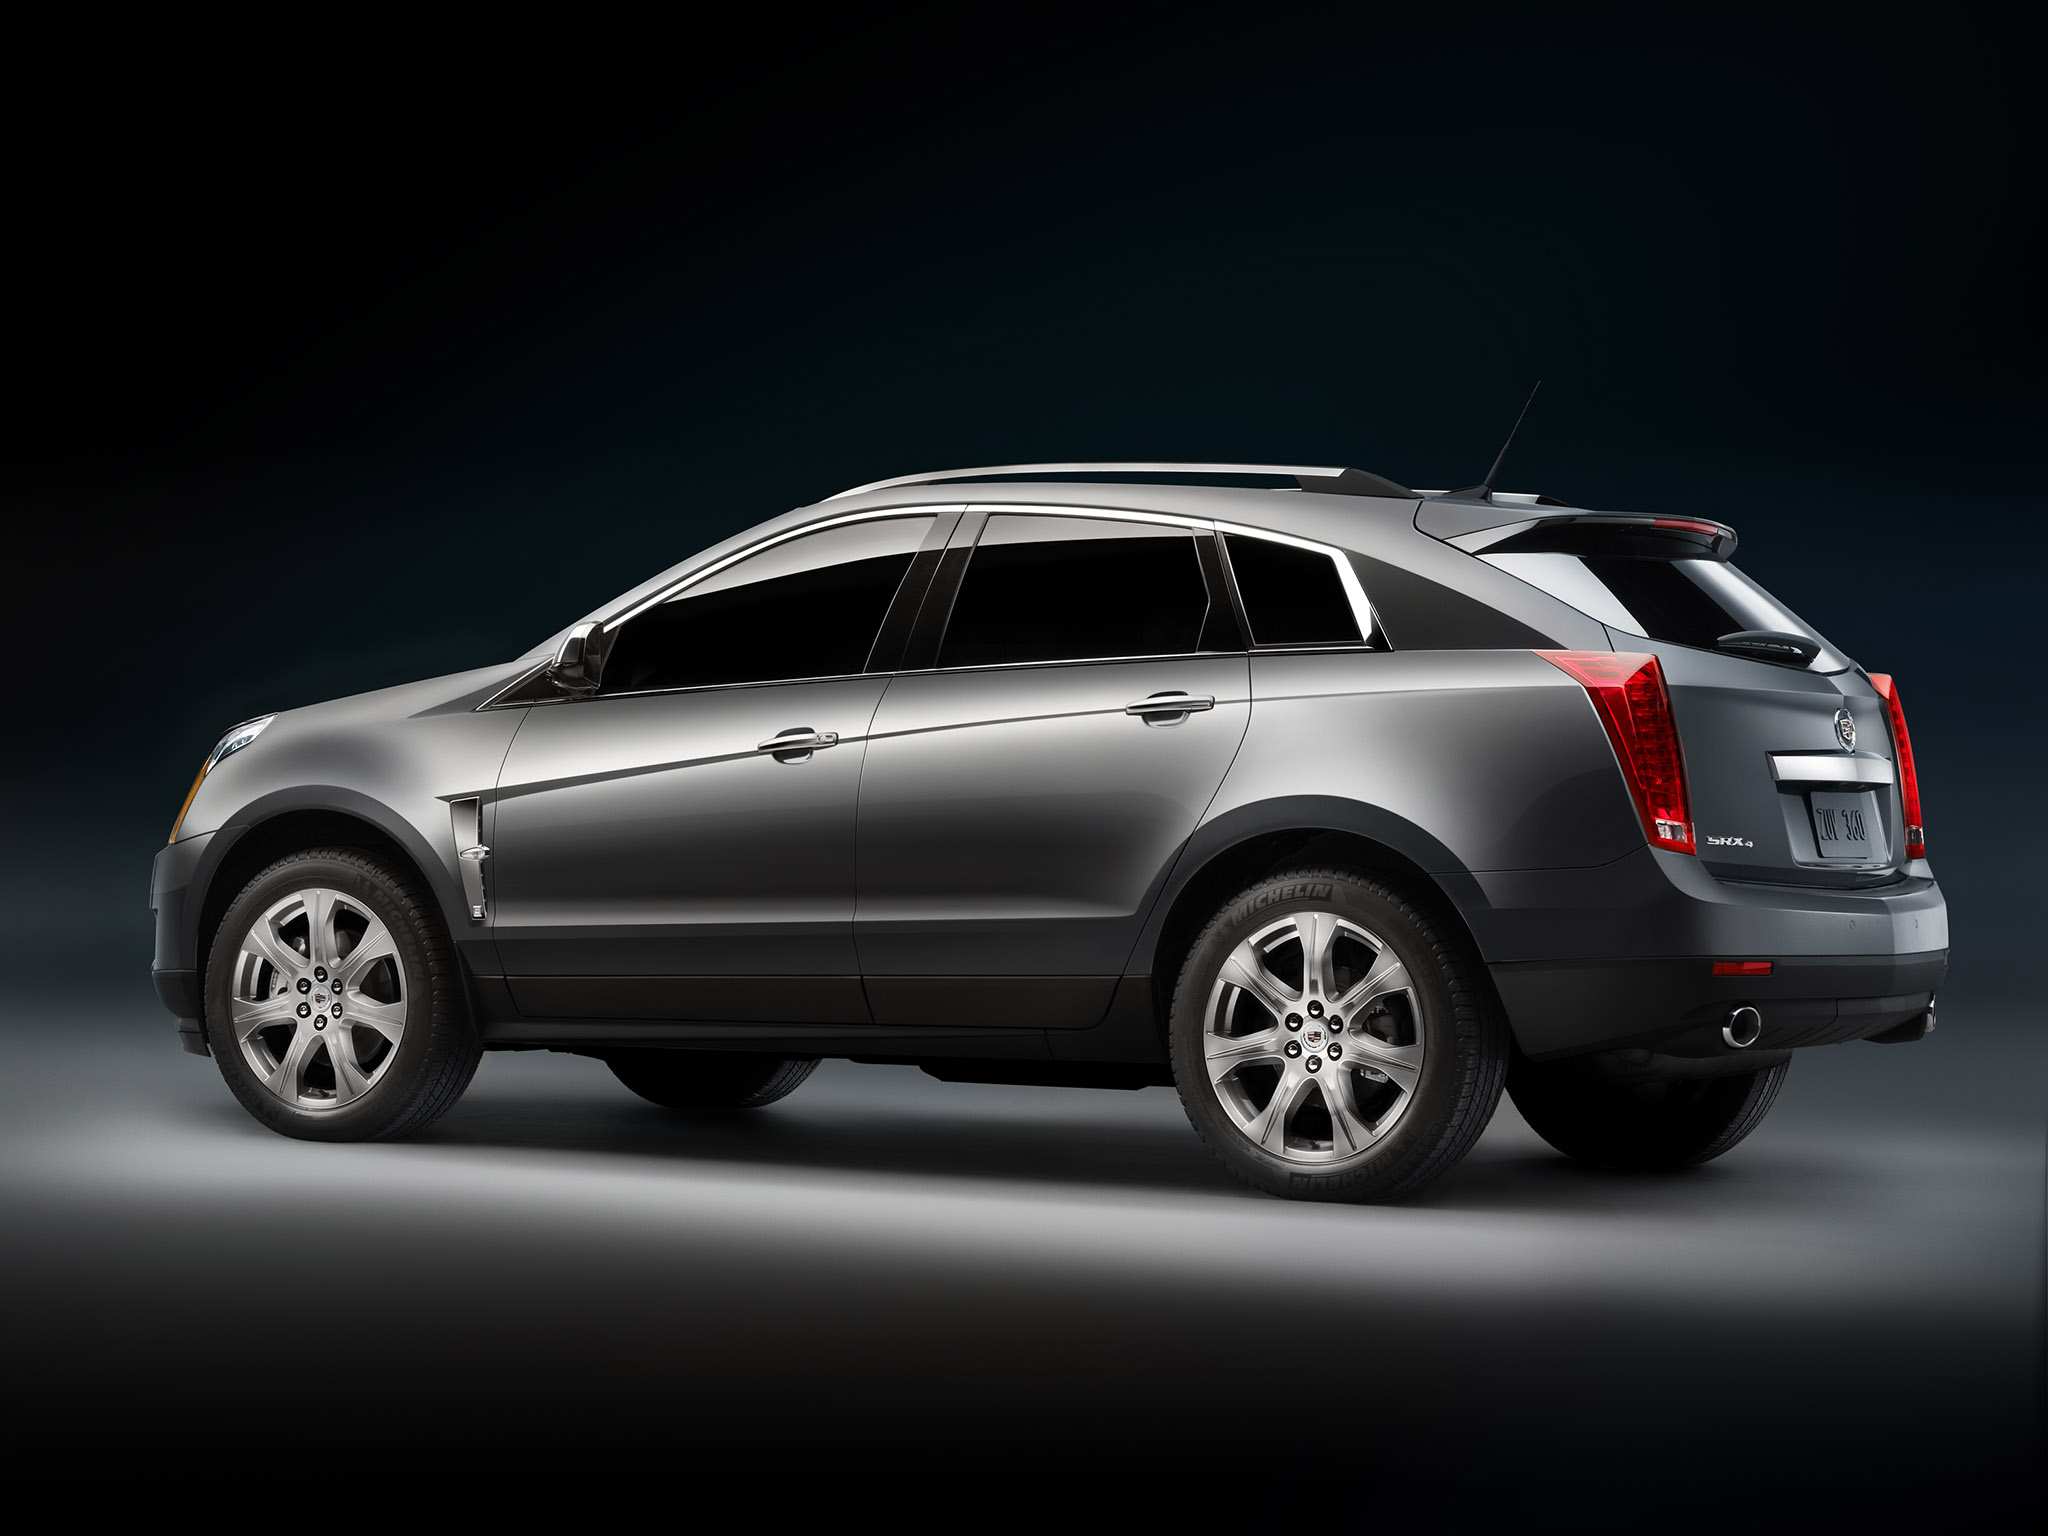 cadillac srx crossover 2010 cadillac srx crossover 2010 photo 05 car in pictures car photo. Black Bedroom Furniture Sets. Home Design Ideas